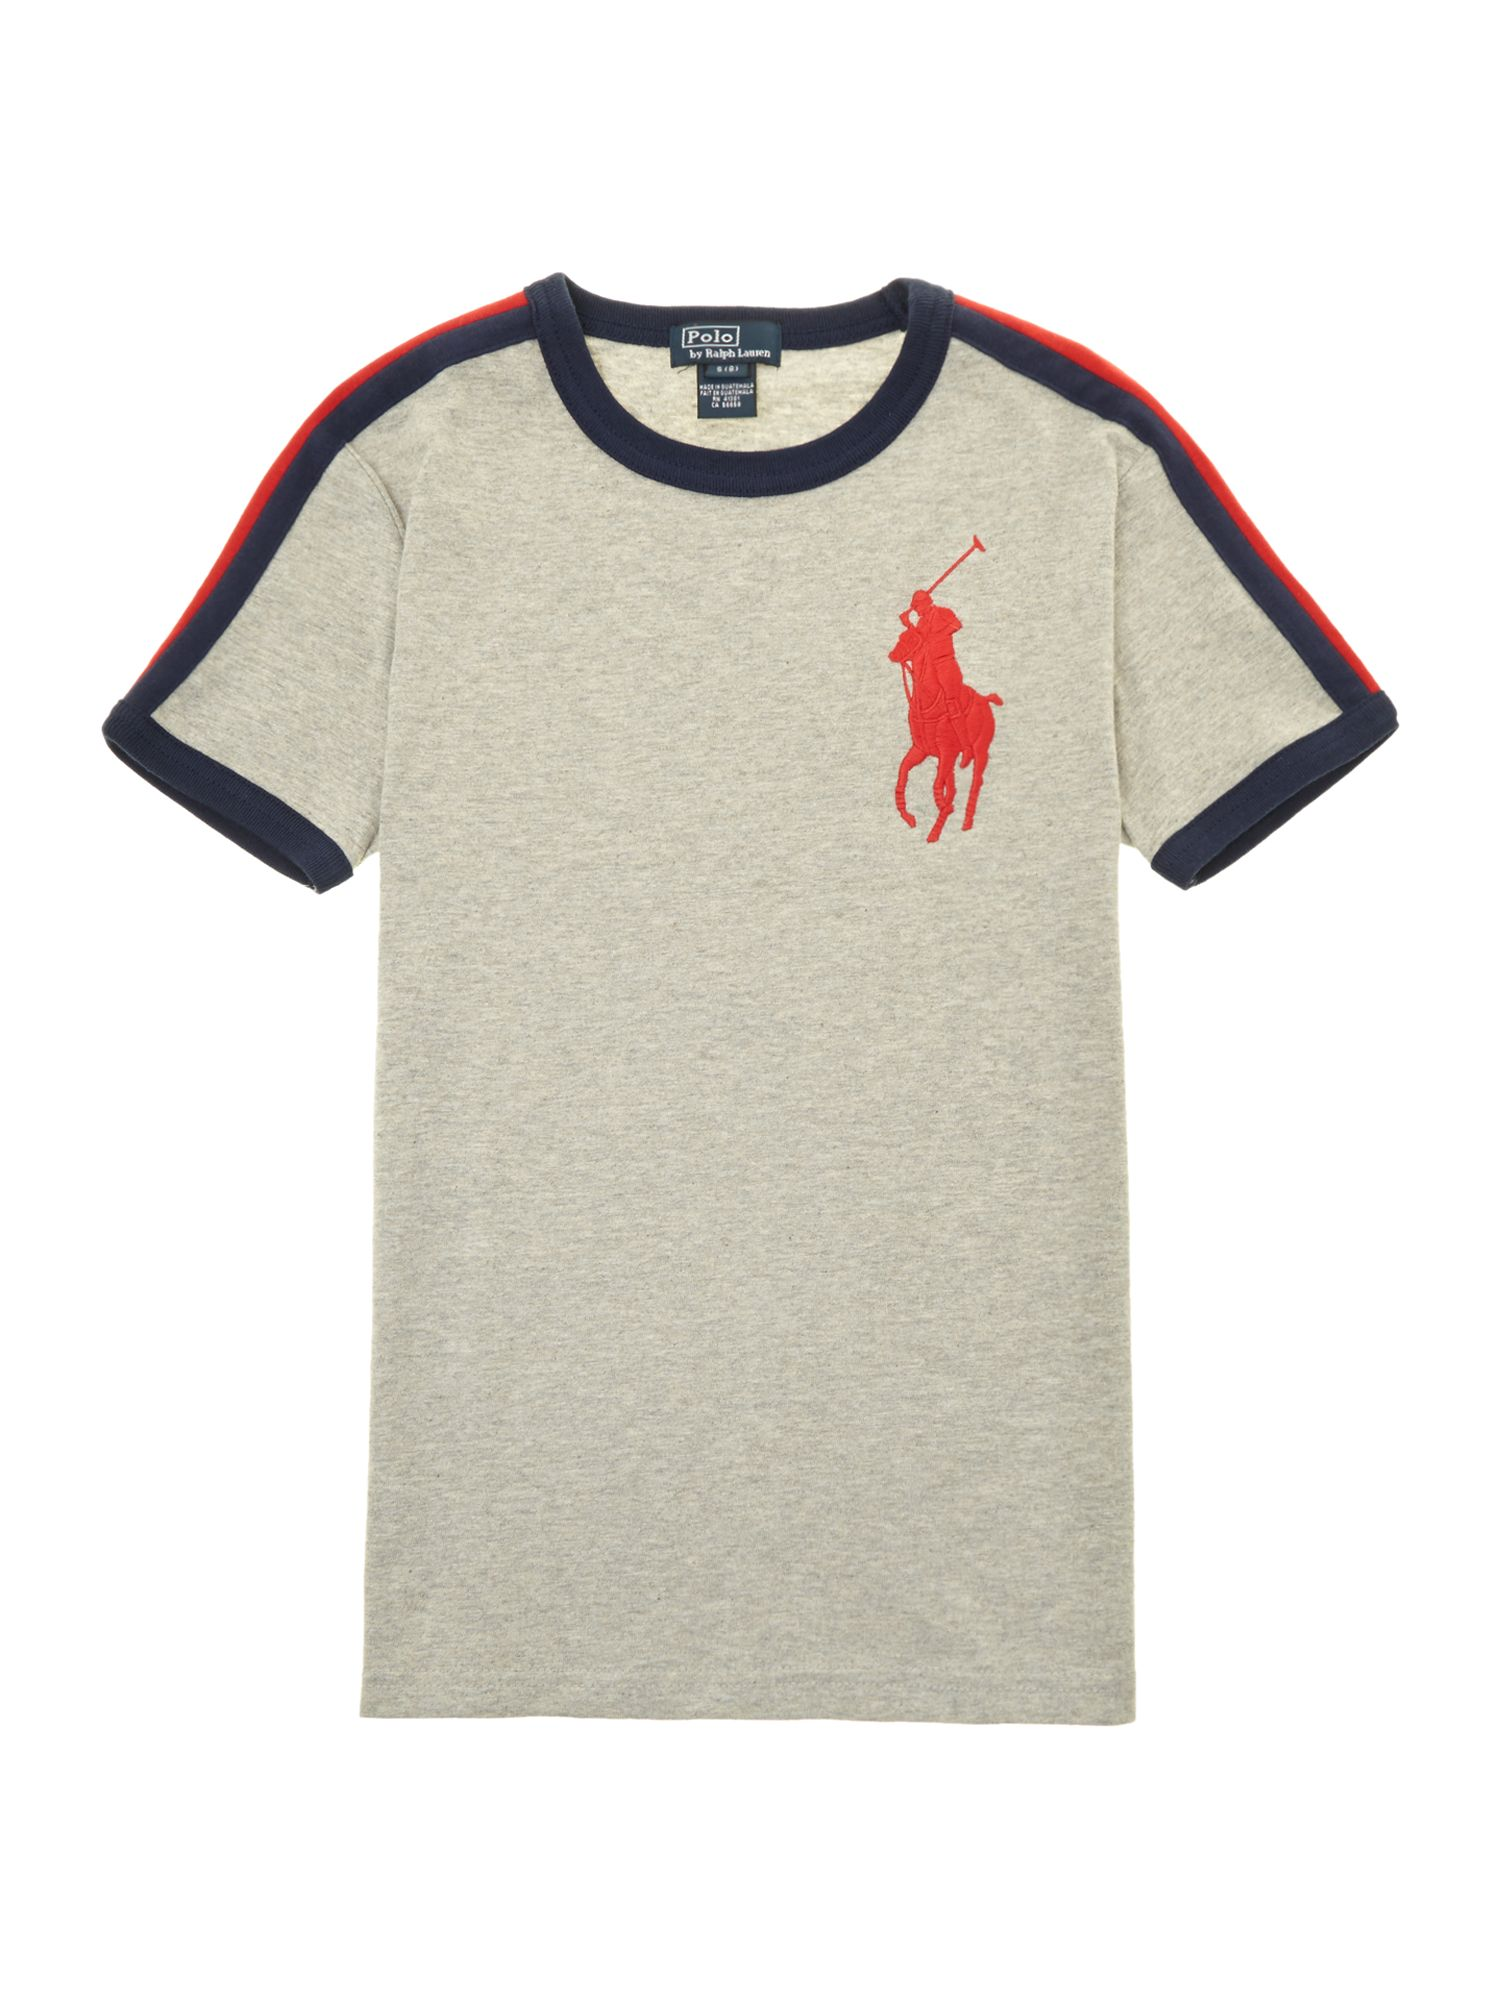 Boys large pony t-shirt